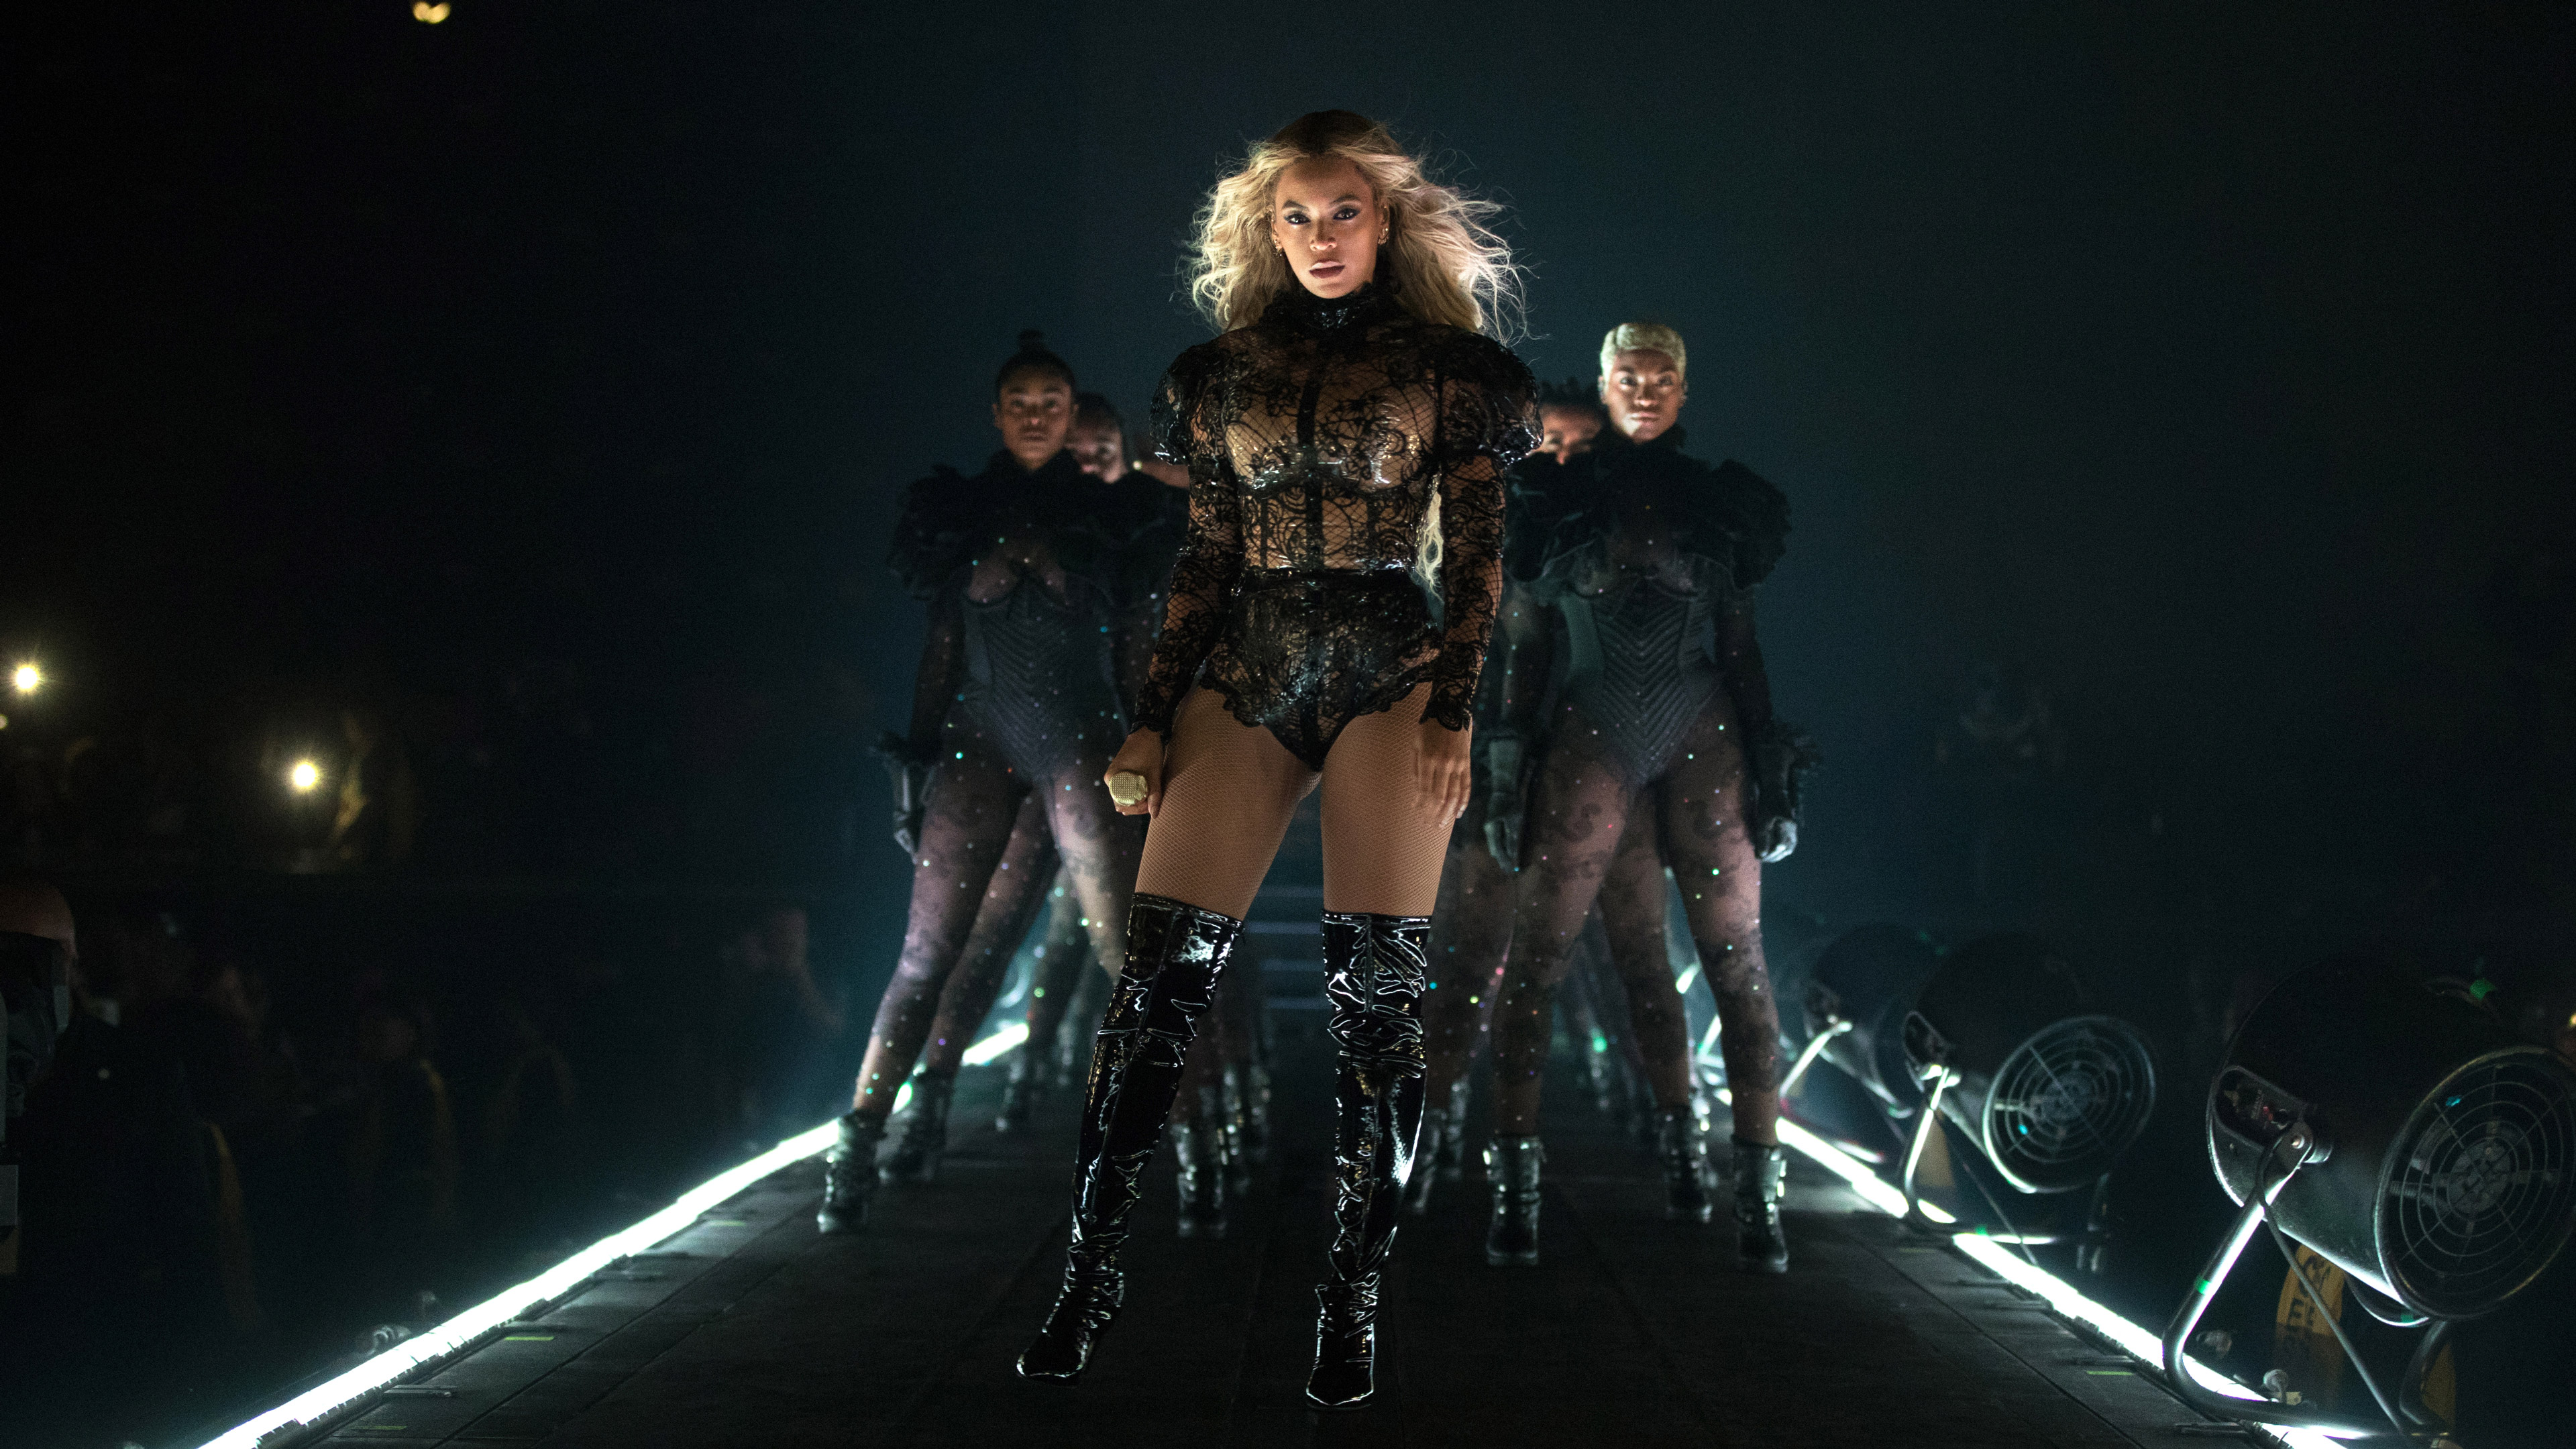 Beyonce Wallpaper Choice Image Wallpaper And Free Download